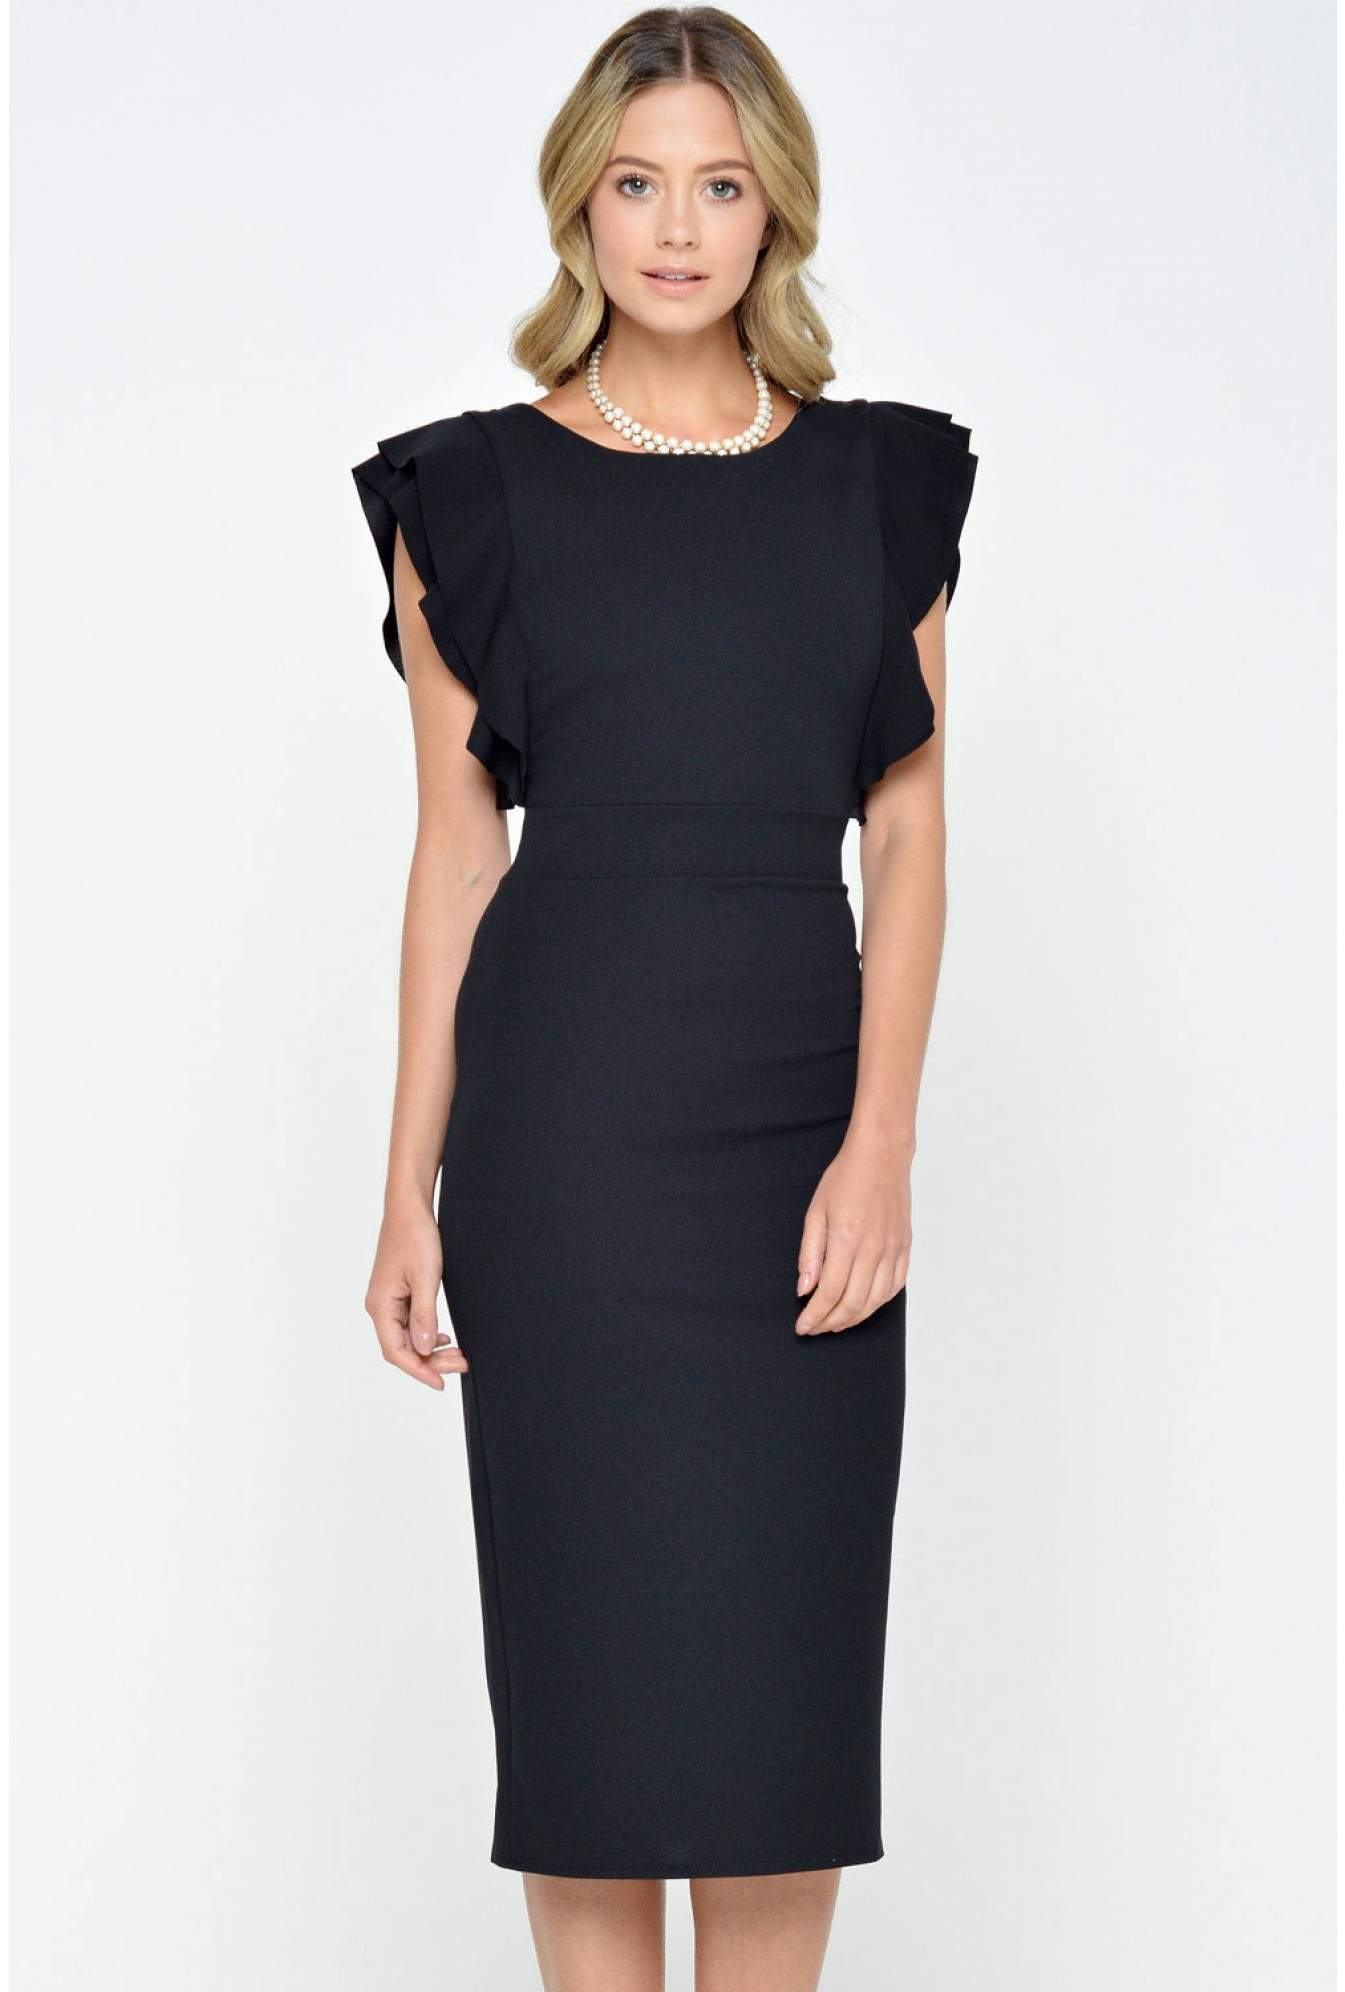 ad48e0aabec Wal G Nell Frilled Sleeve Midi Dress in Black | iCLOTHING